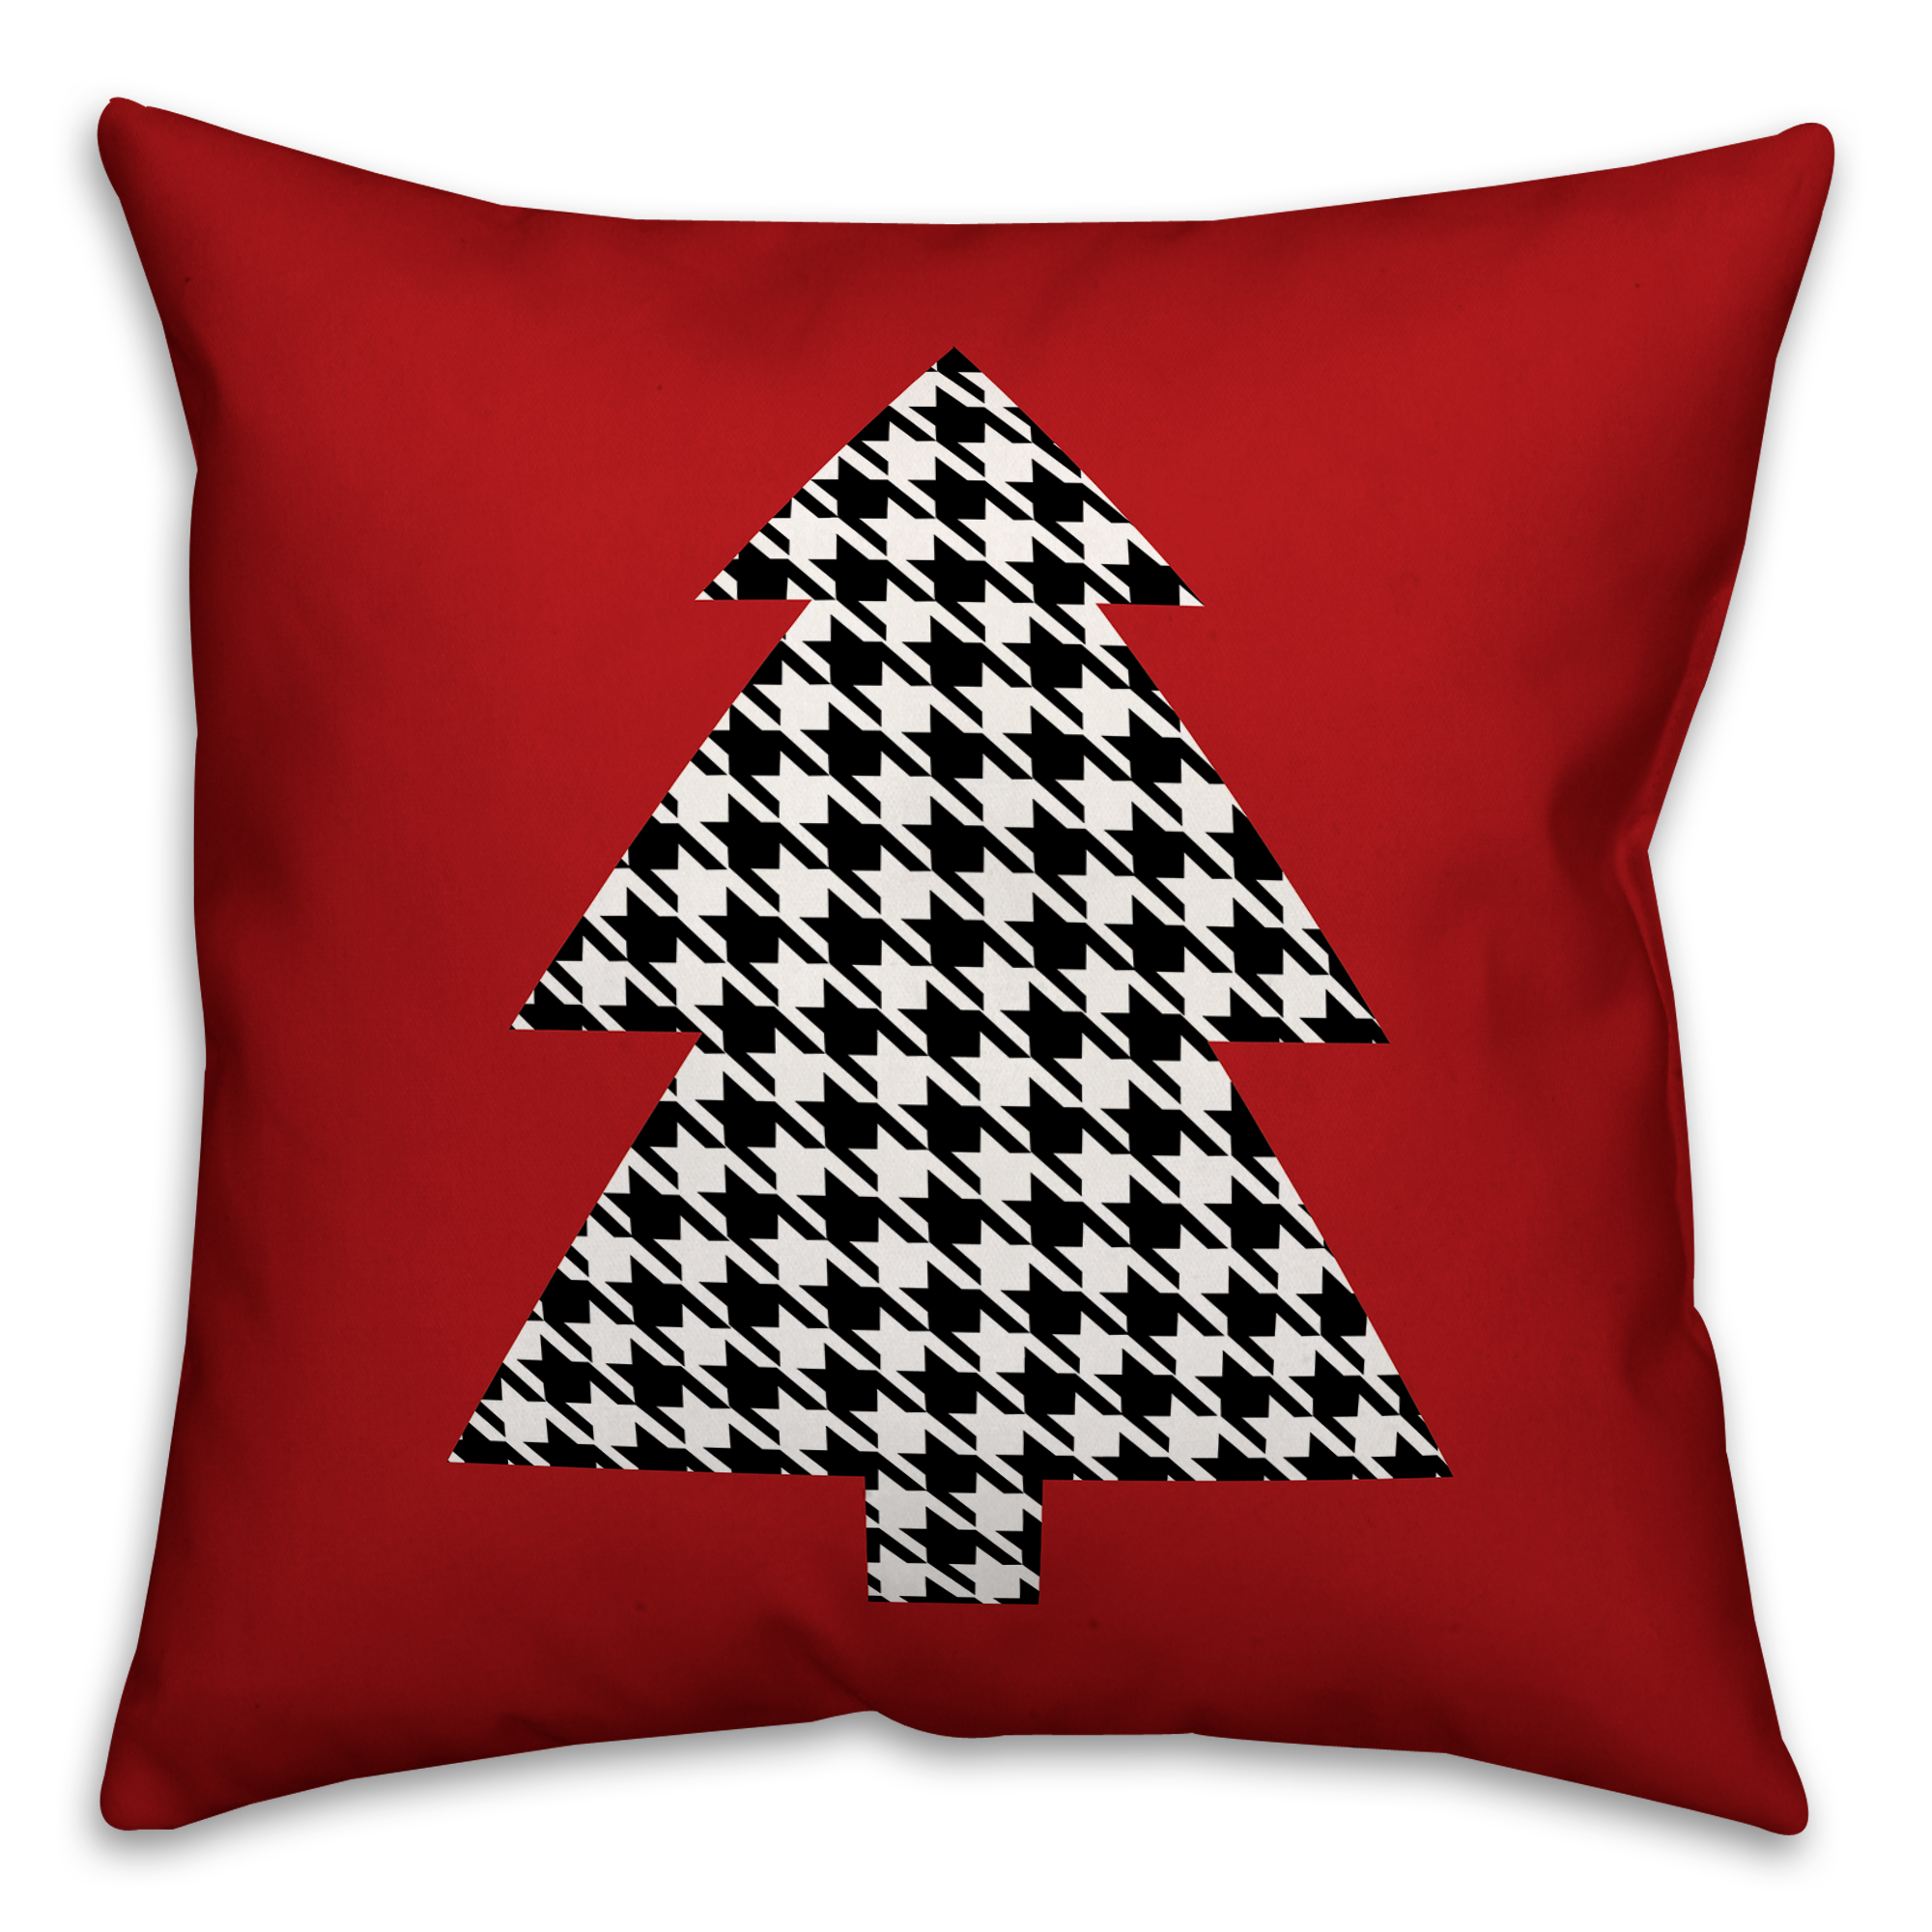 Houndstooth Christmas Tree 16x16 Spun Poly Pillow